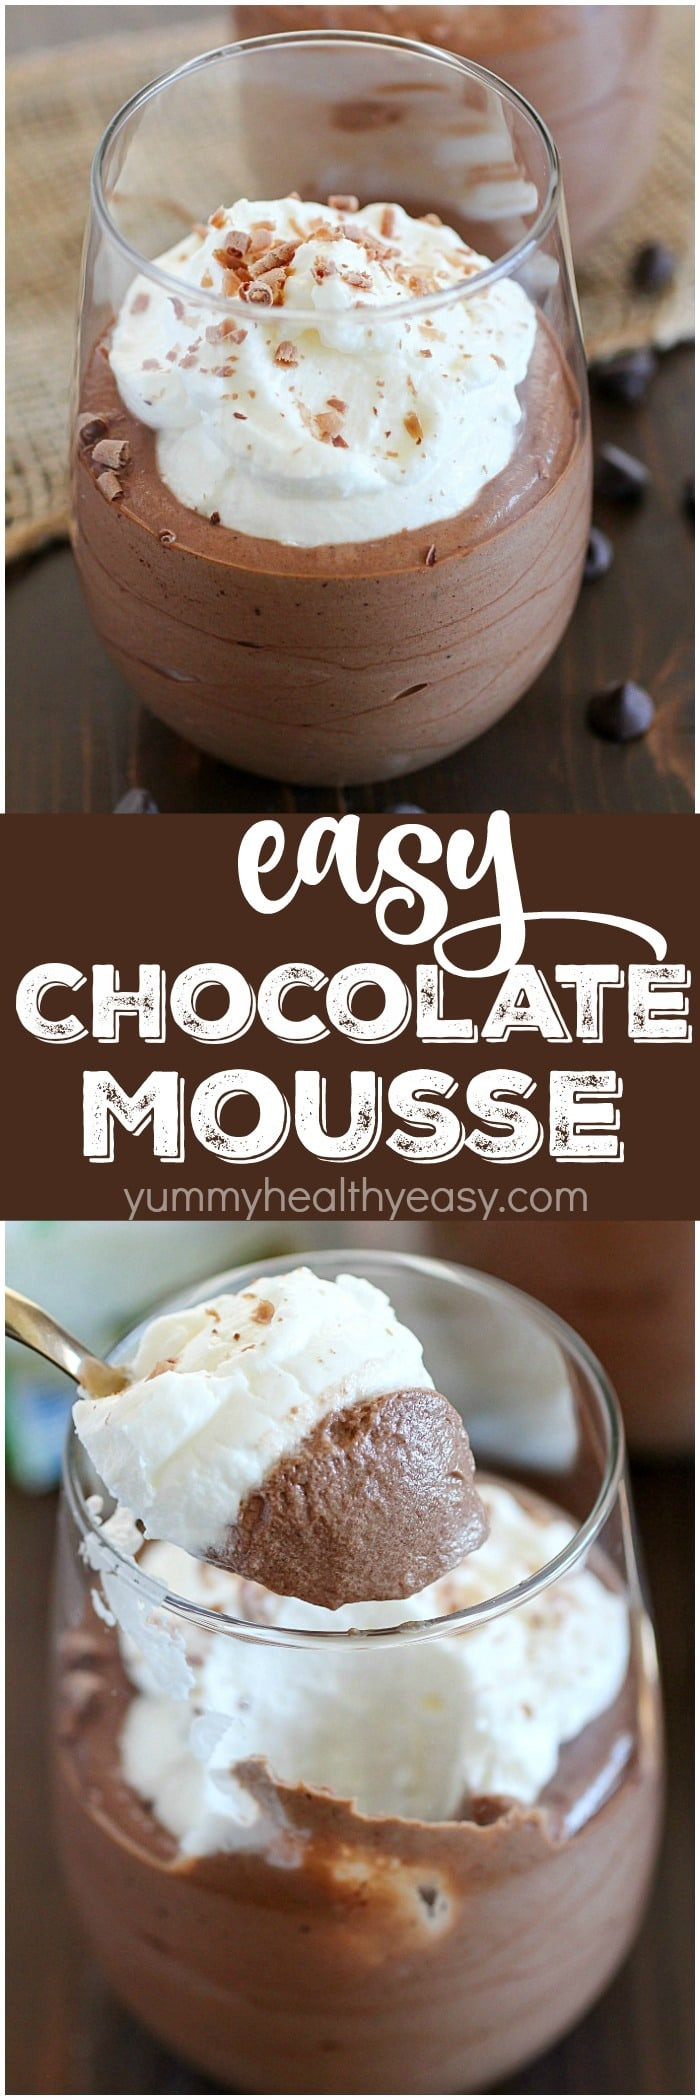 Simple Ingredients Dessert  Easy Chocolate Mousse Recipe Yummy Healthy Easy